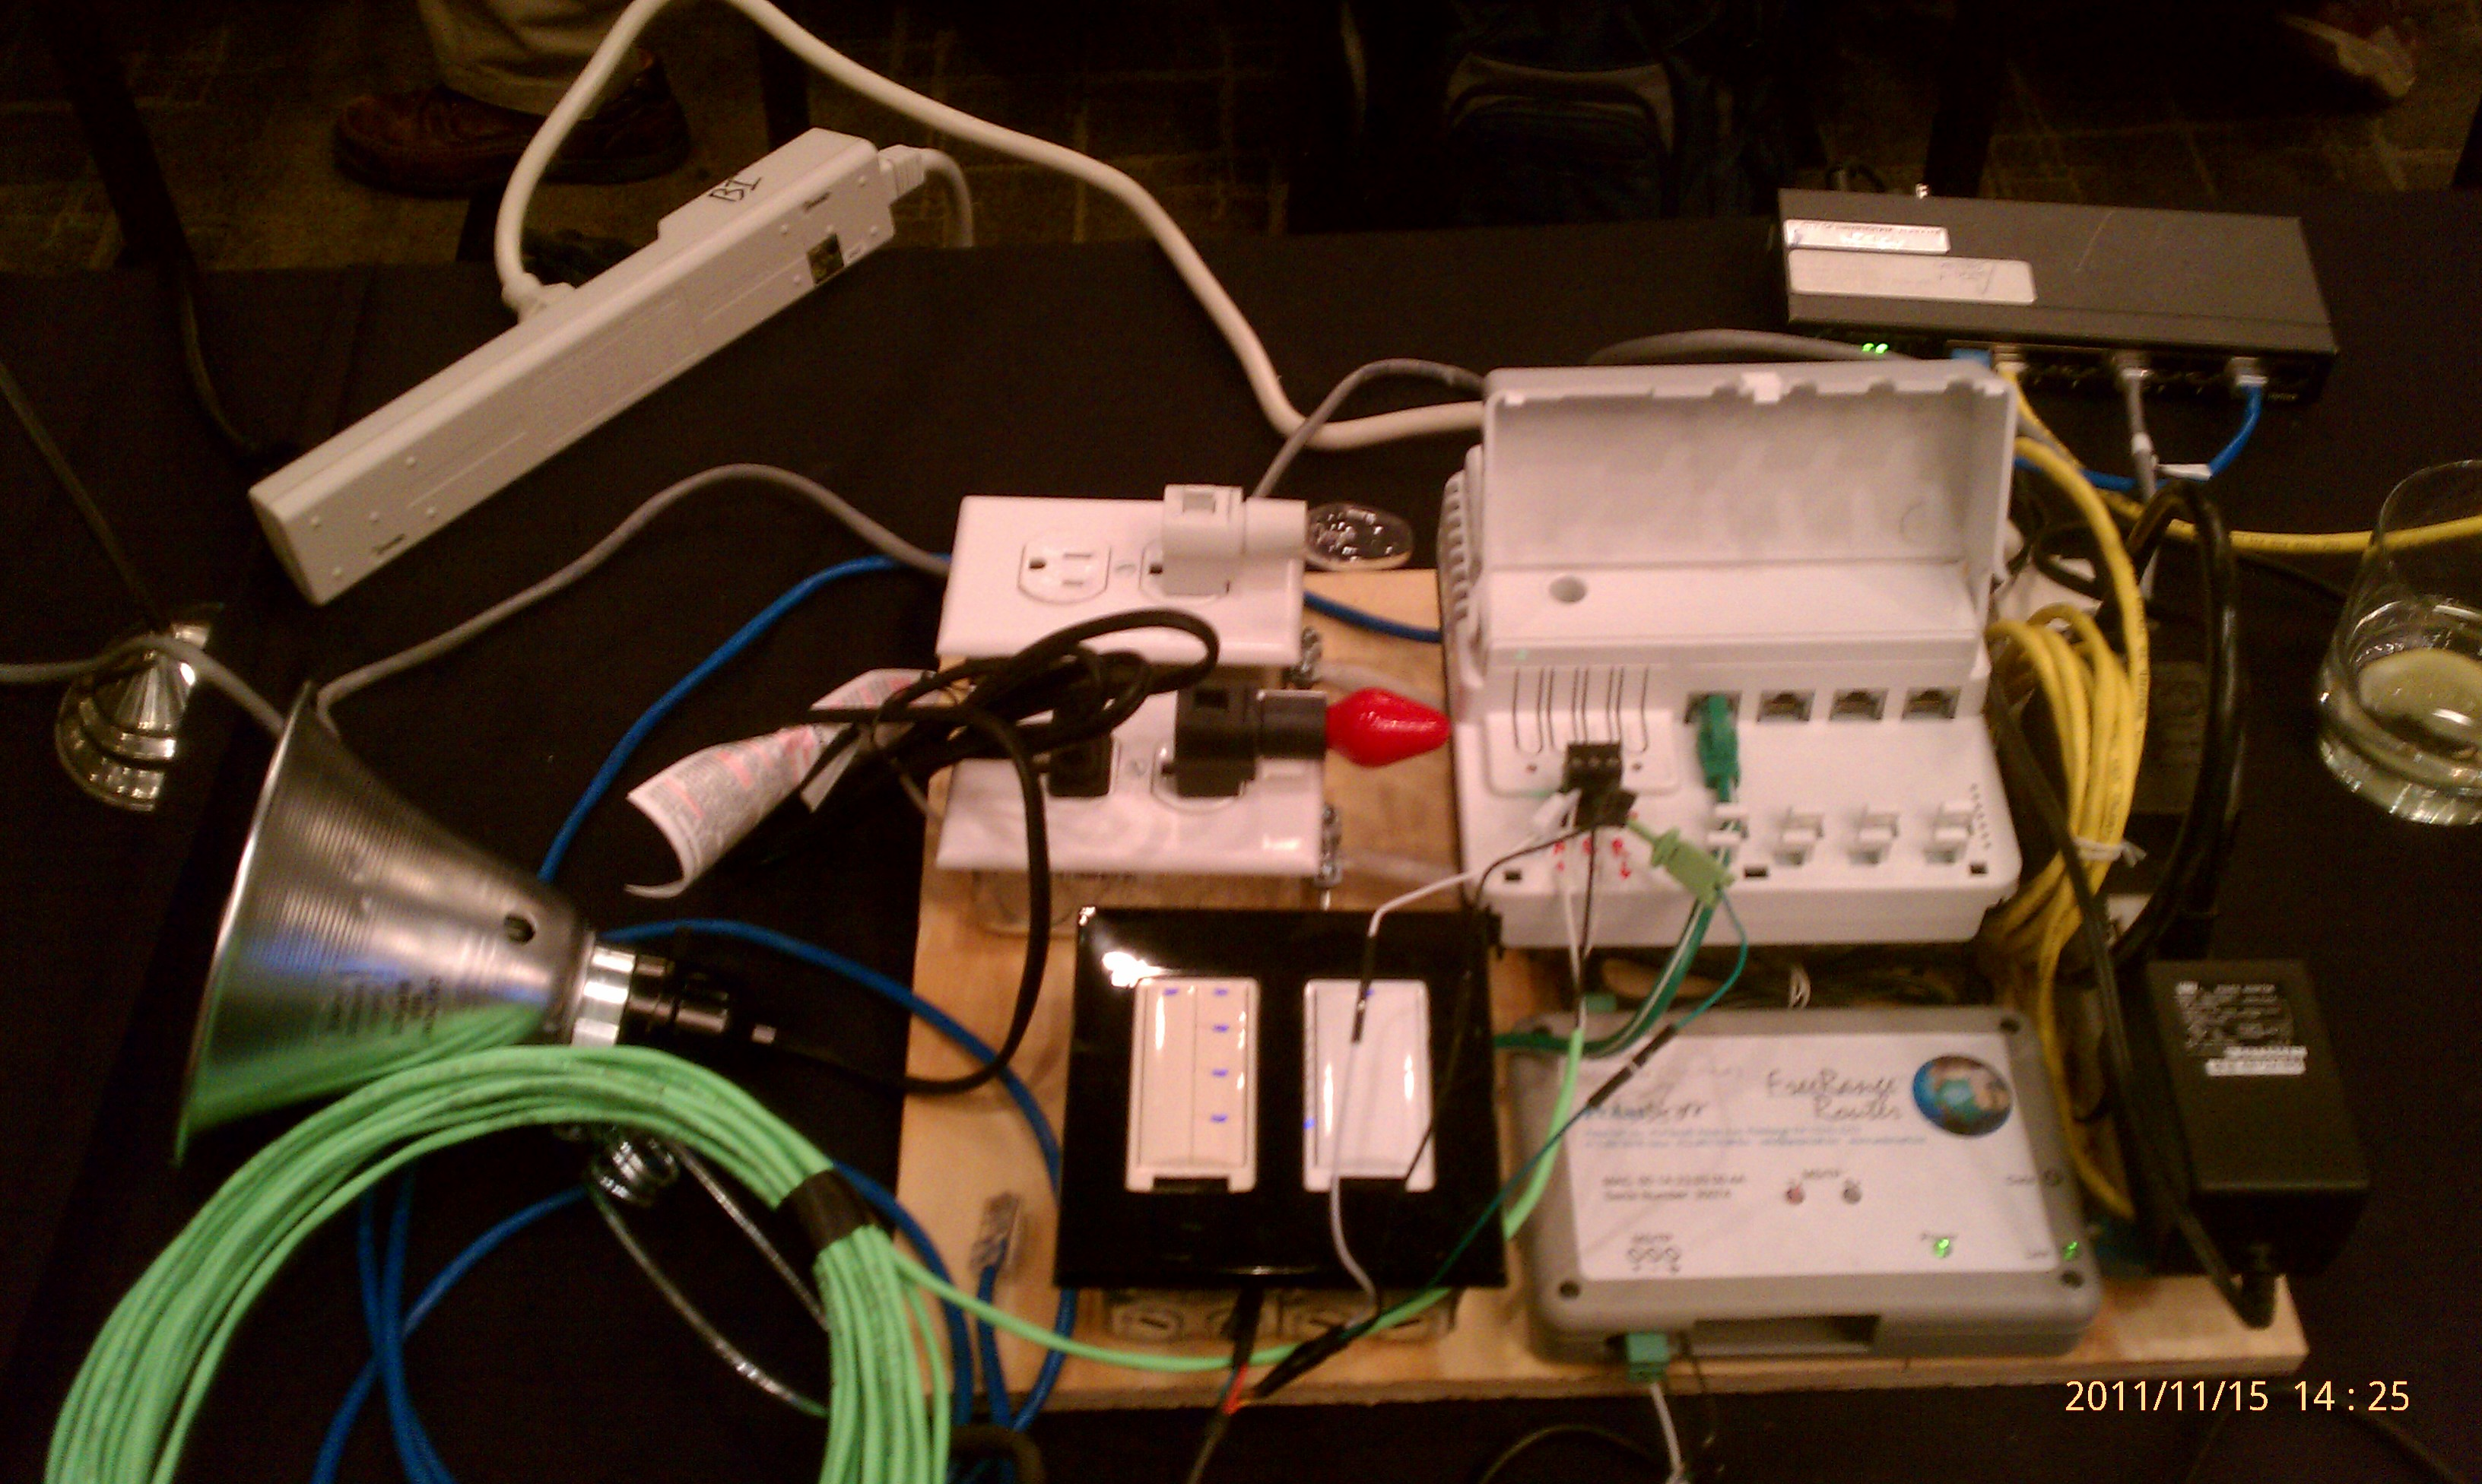 Steves Software Trek Open Source Haven Bacnet Wiring I Brought A Wattstopper Dlm Setup For The International Plugfest Held At Westin Hotel In Atlanta Its Always Fun To Have Bright Lights